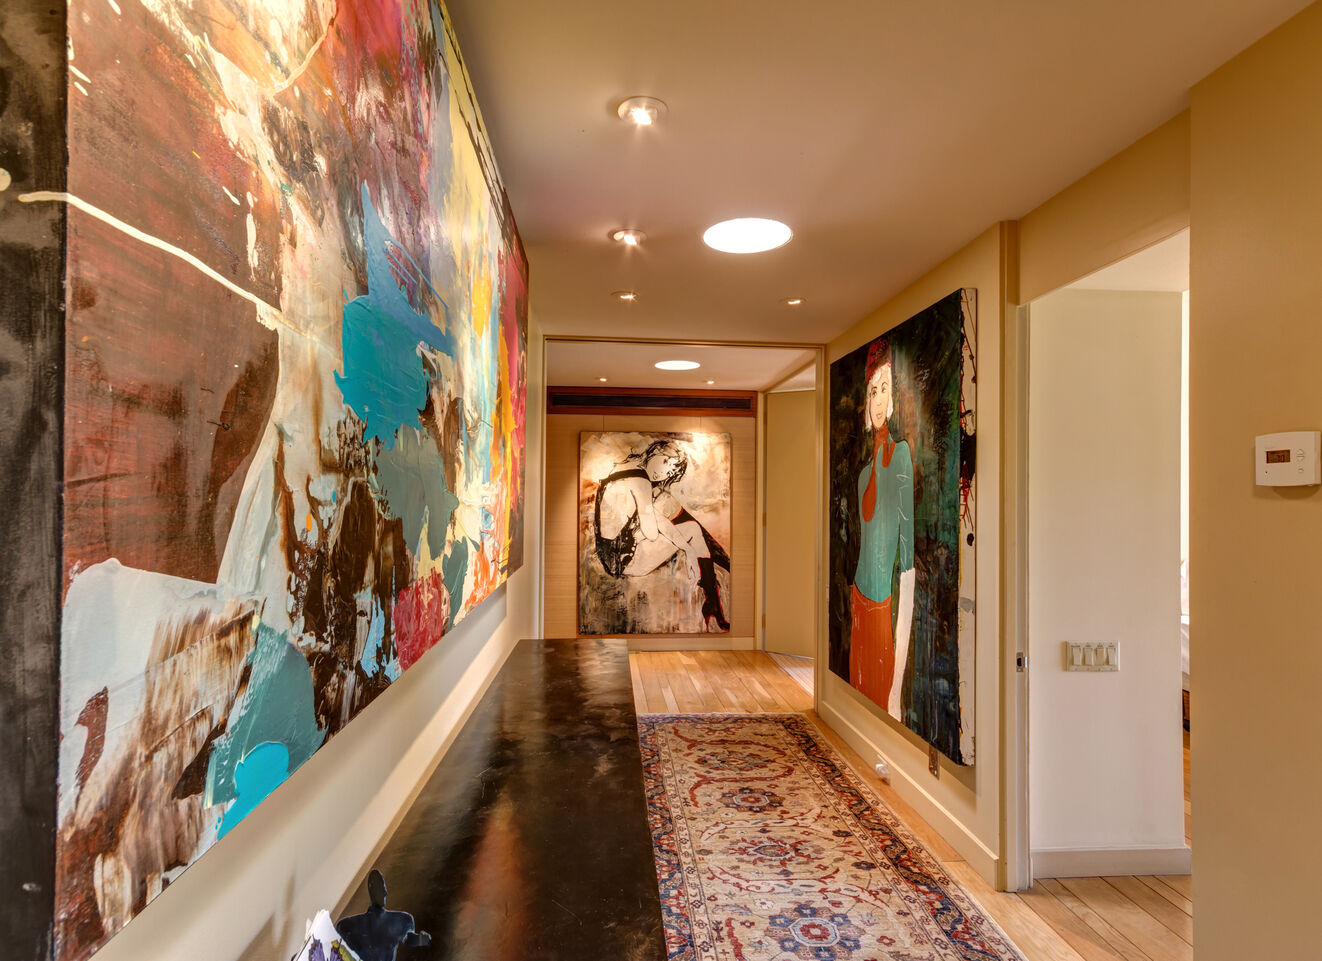 Grand Hallway with Gallery